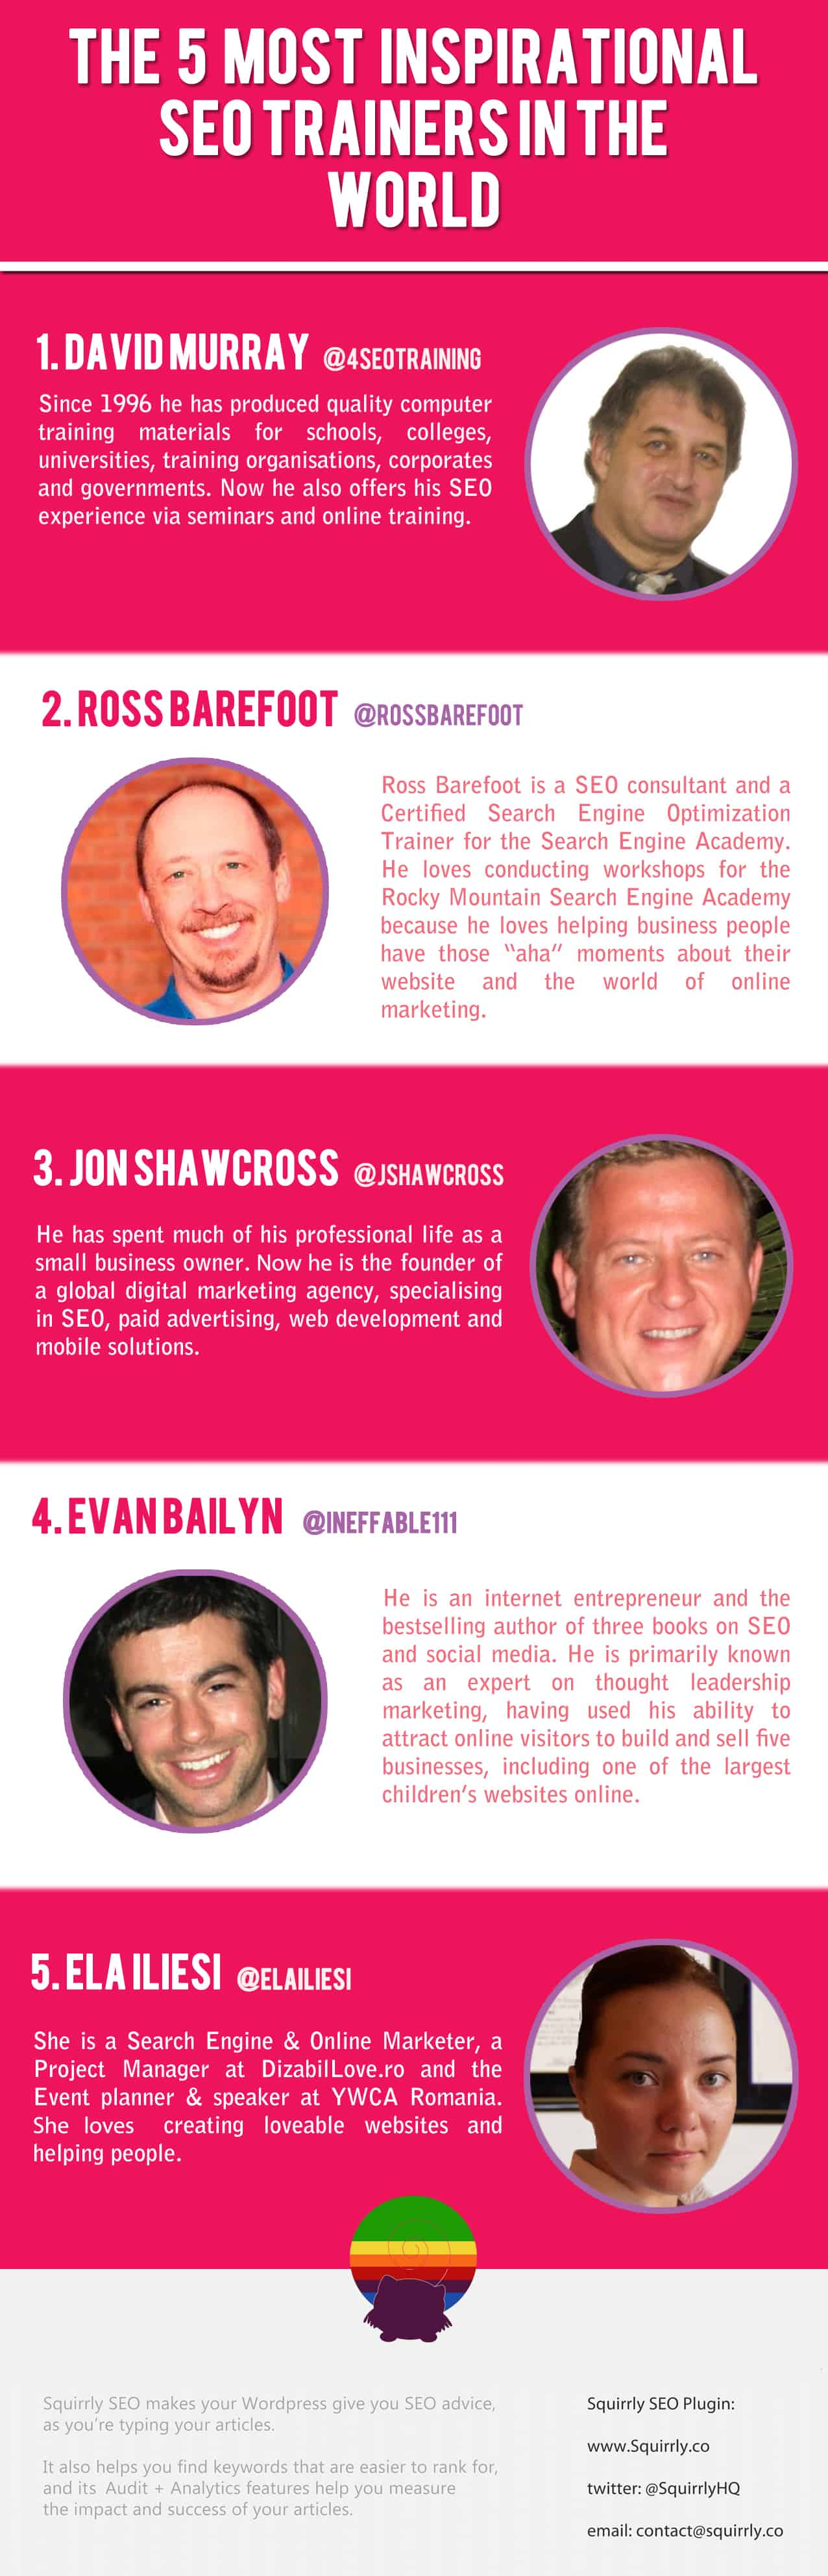 5 most inspirational seo trainers in the world